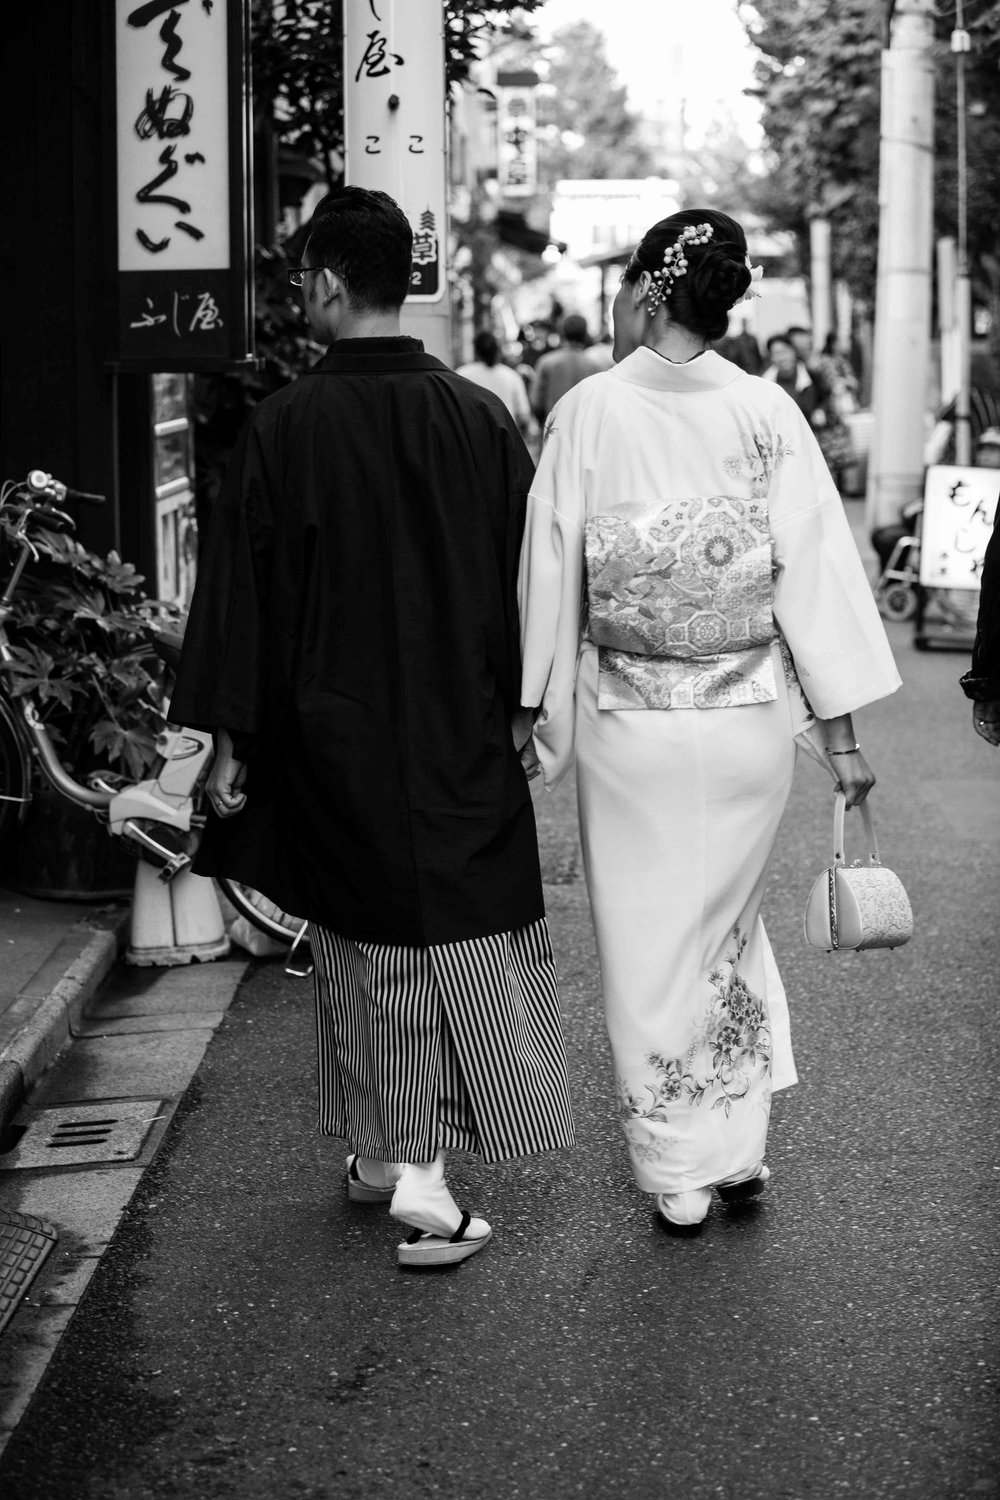 Prenup (engagement/pre-wedding) photo shoots in Tokyo